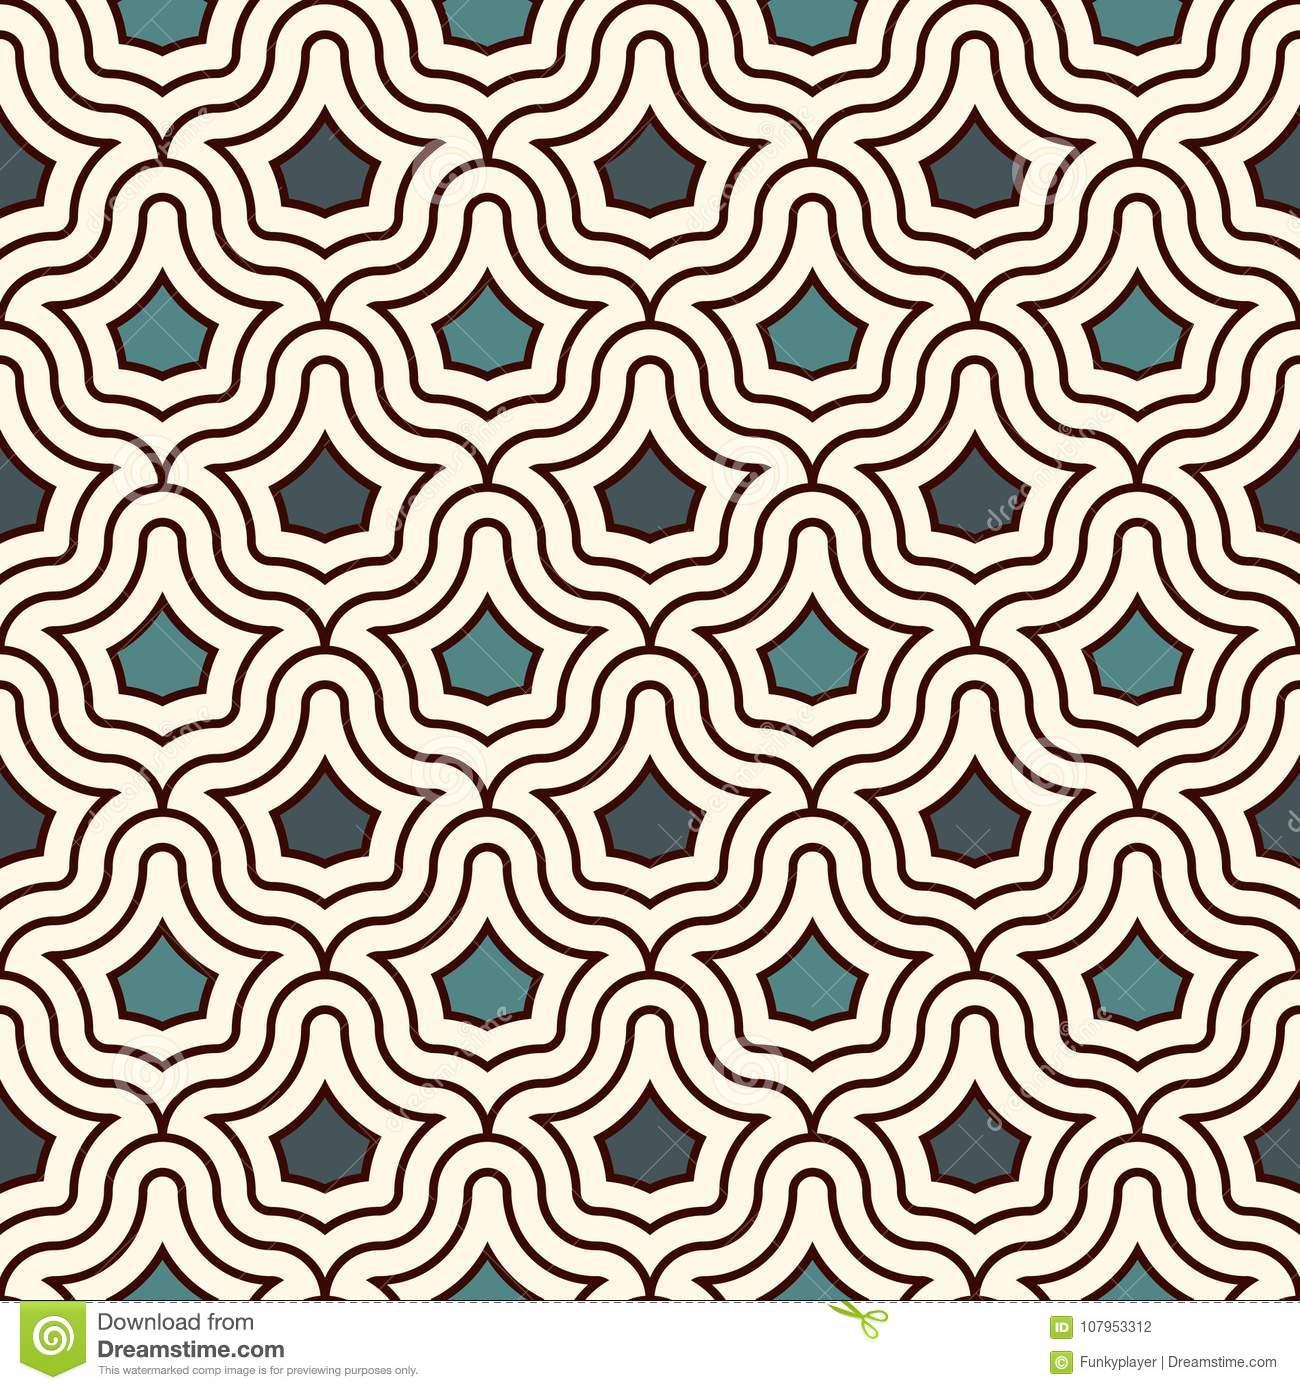 Interlocking figures tessellation background. Repeated geometric shapes. Ethnic mosaic ornament. Oriental wallpaper